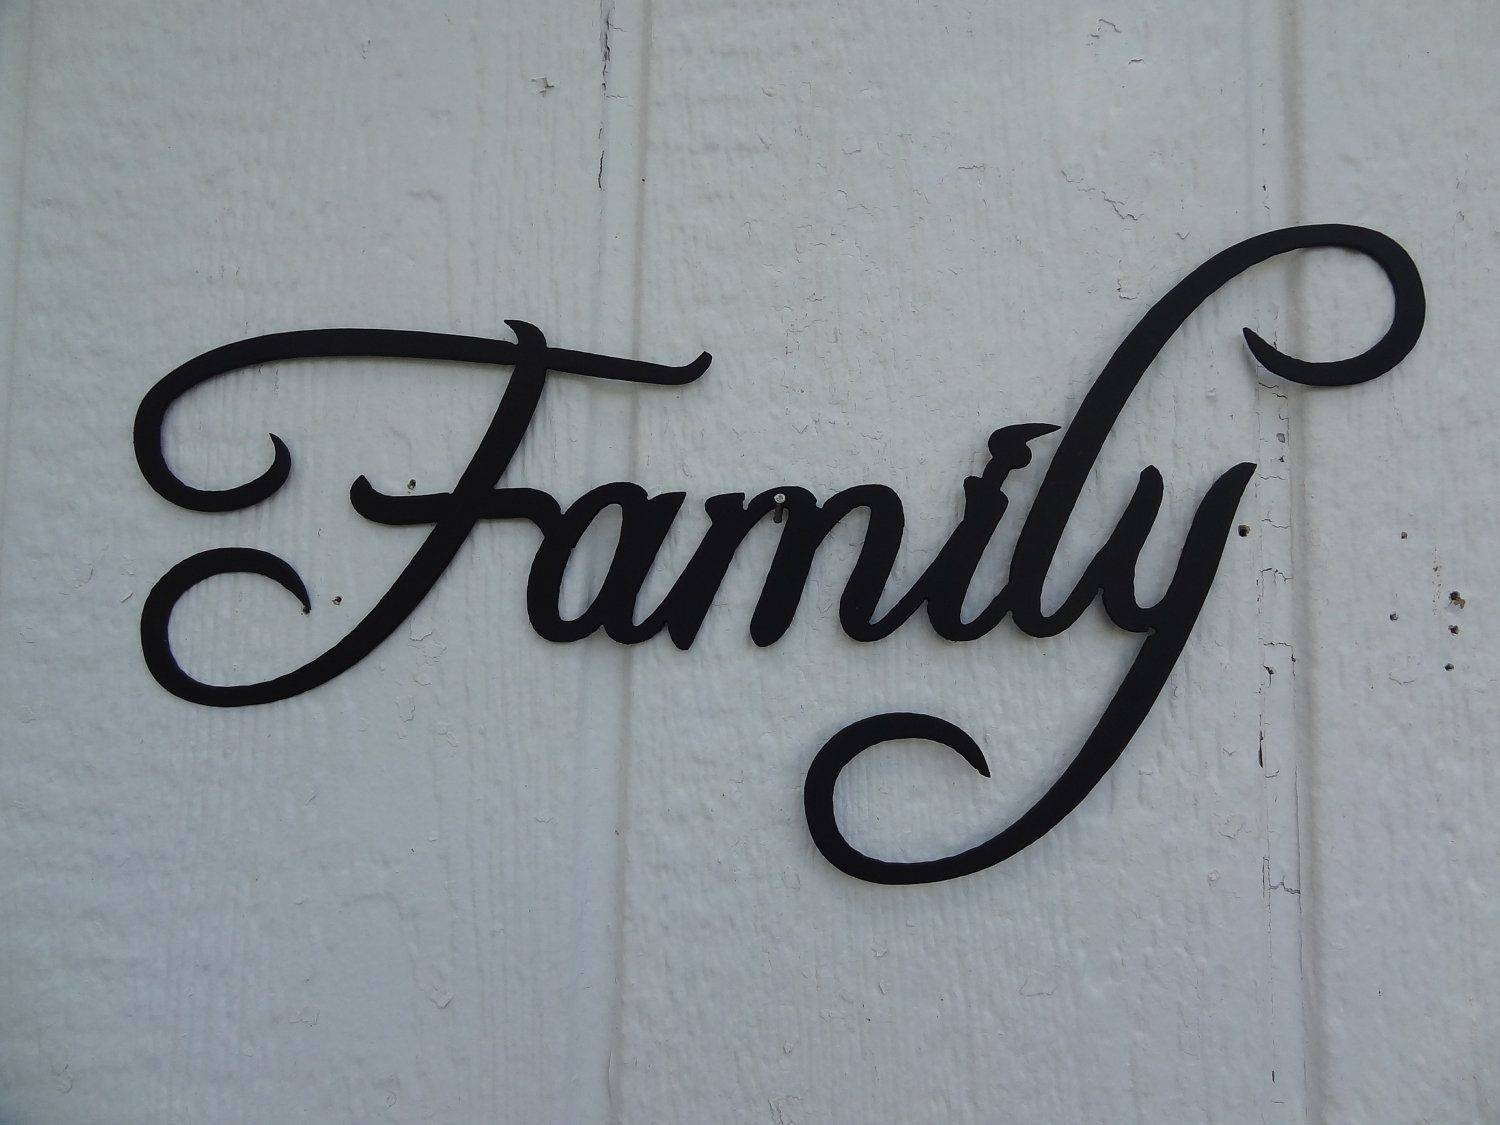 Hand Made Family Word Decorative Metal Wall Art Home Decorsay Within Newest Family Metal Wall Art (Gallery 9 of 20)